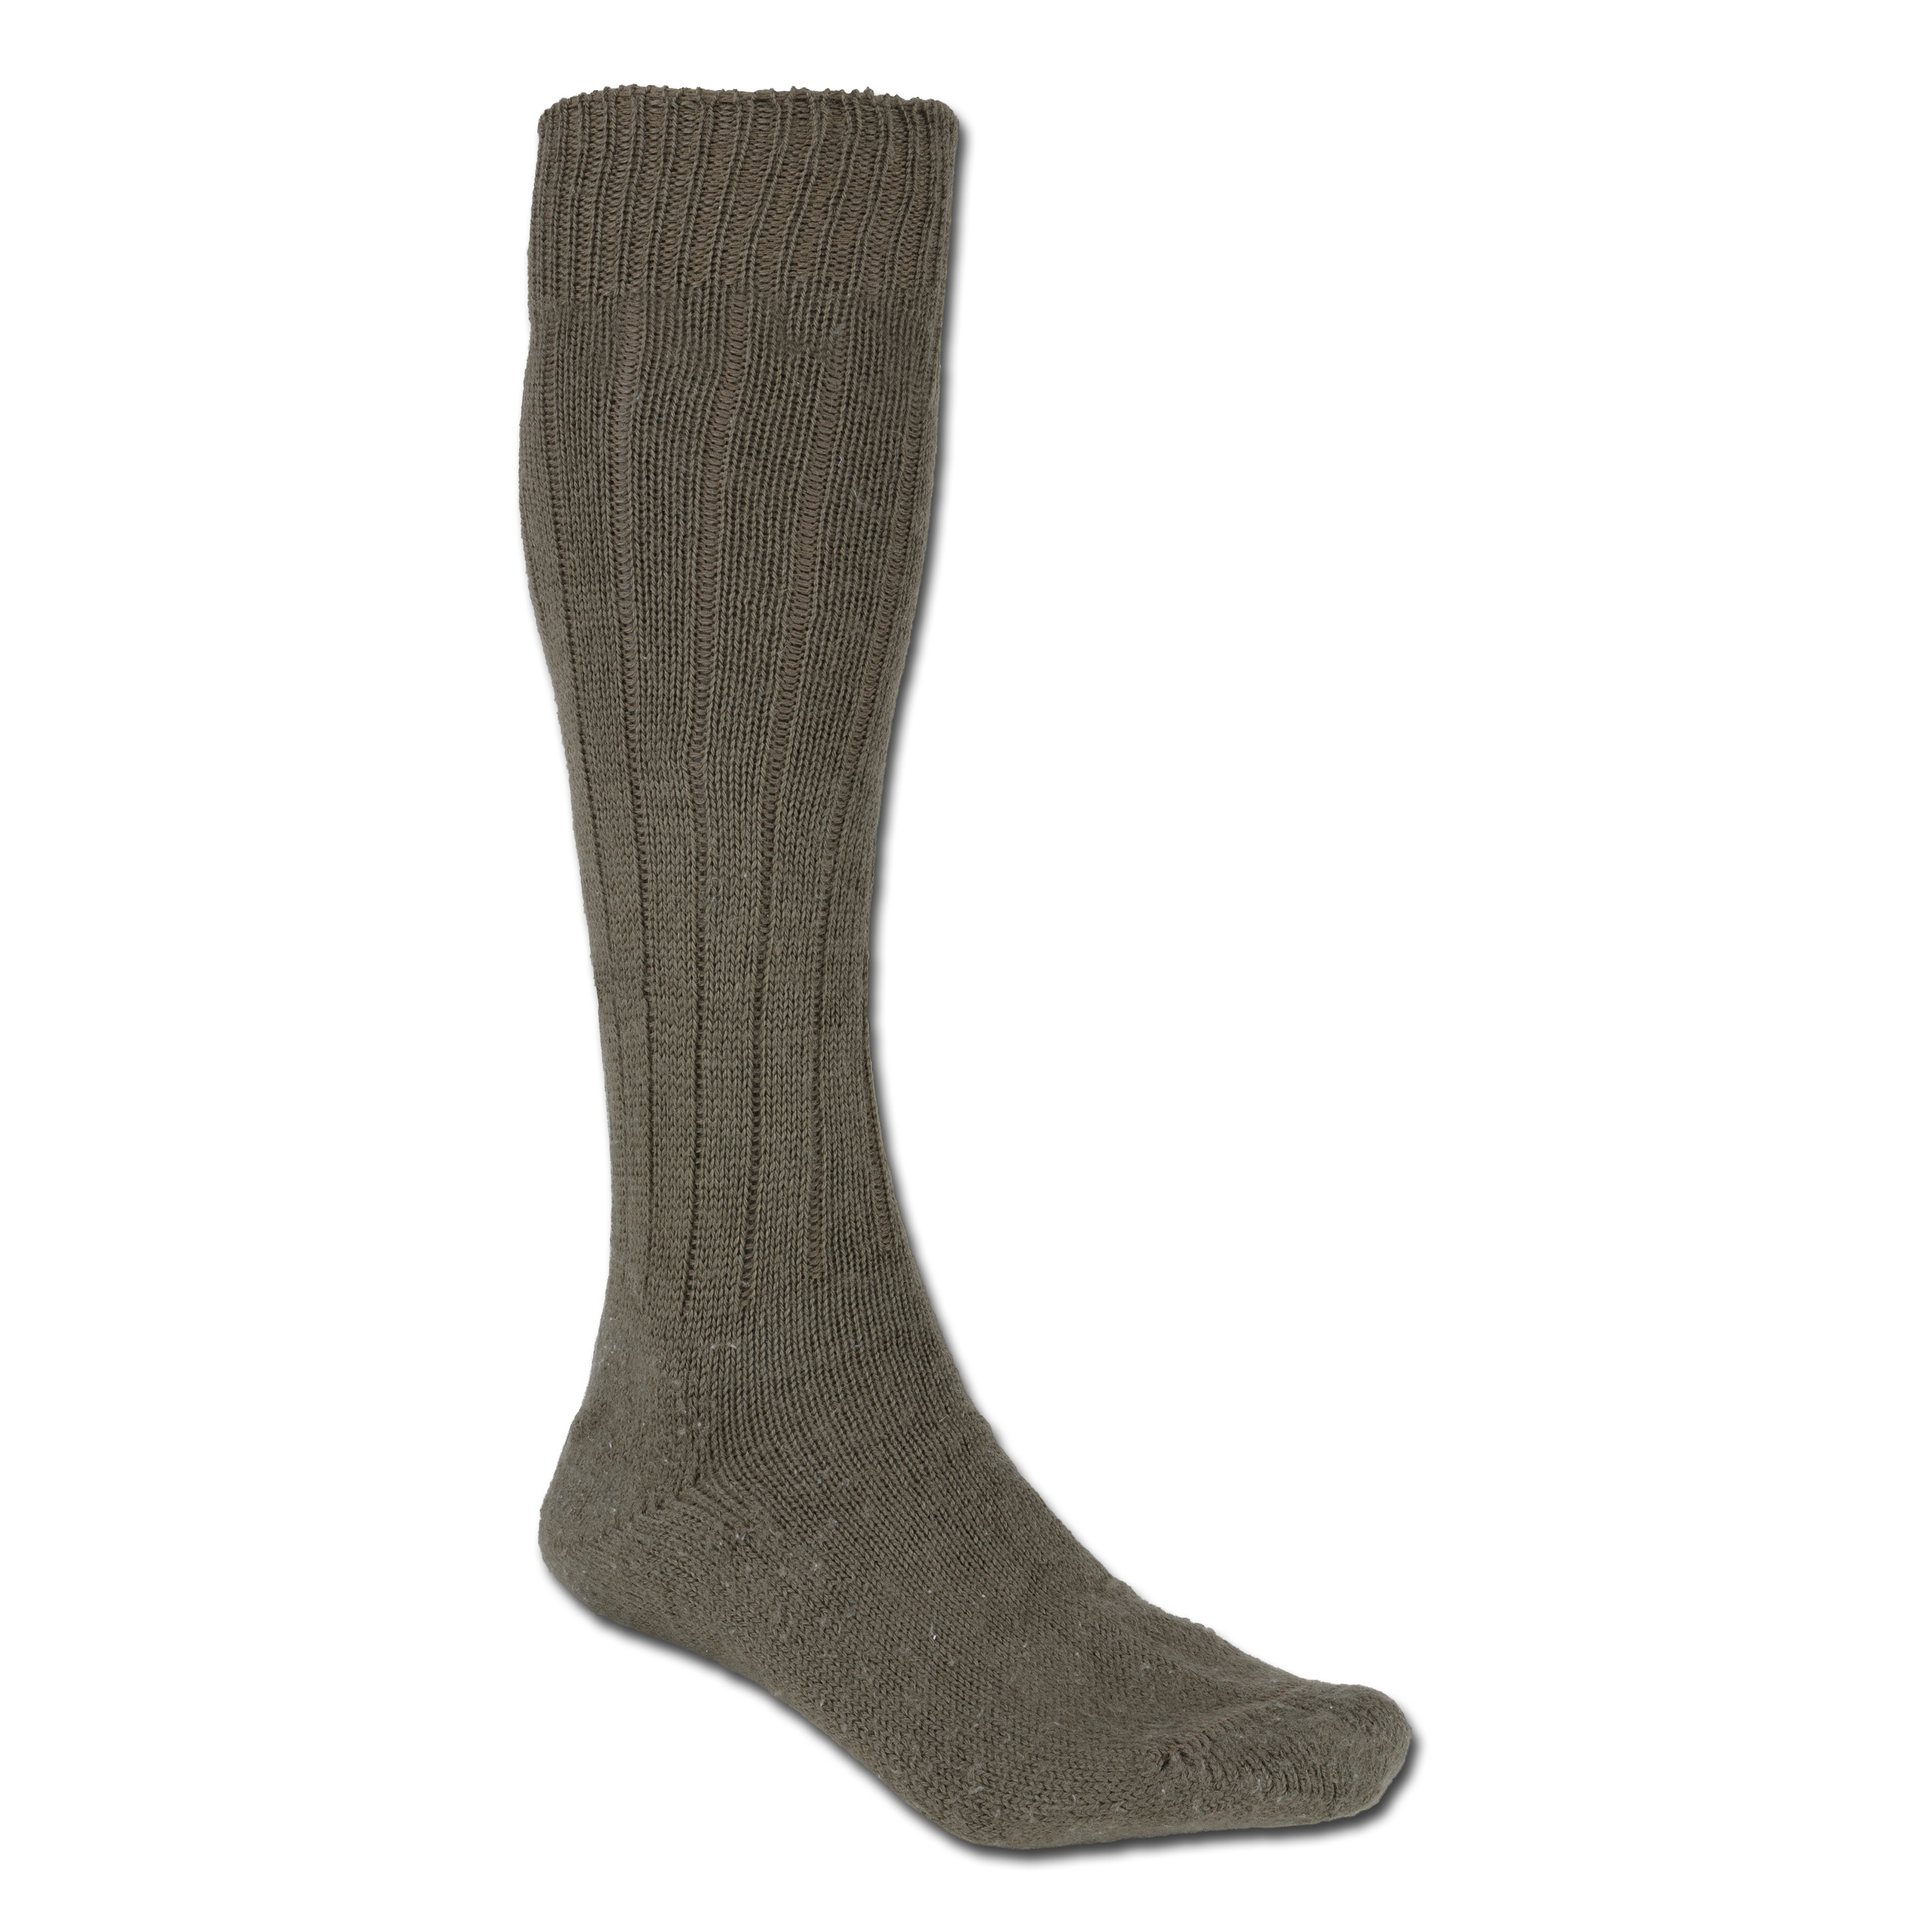 "Purchase The Bundeswehr ""German Army"" Socks Olive Used By ASMC"